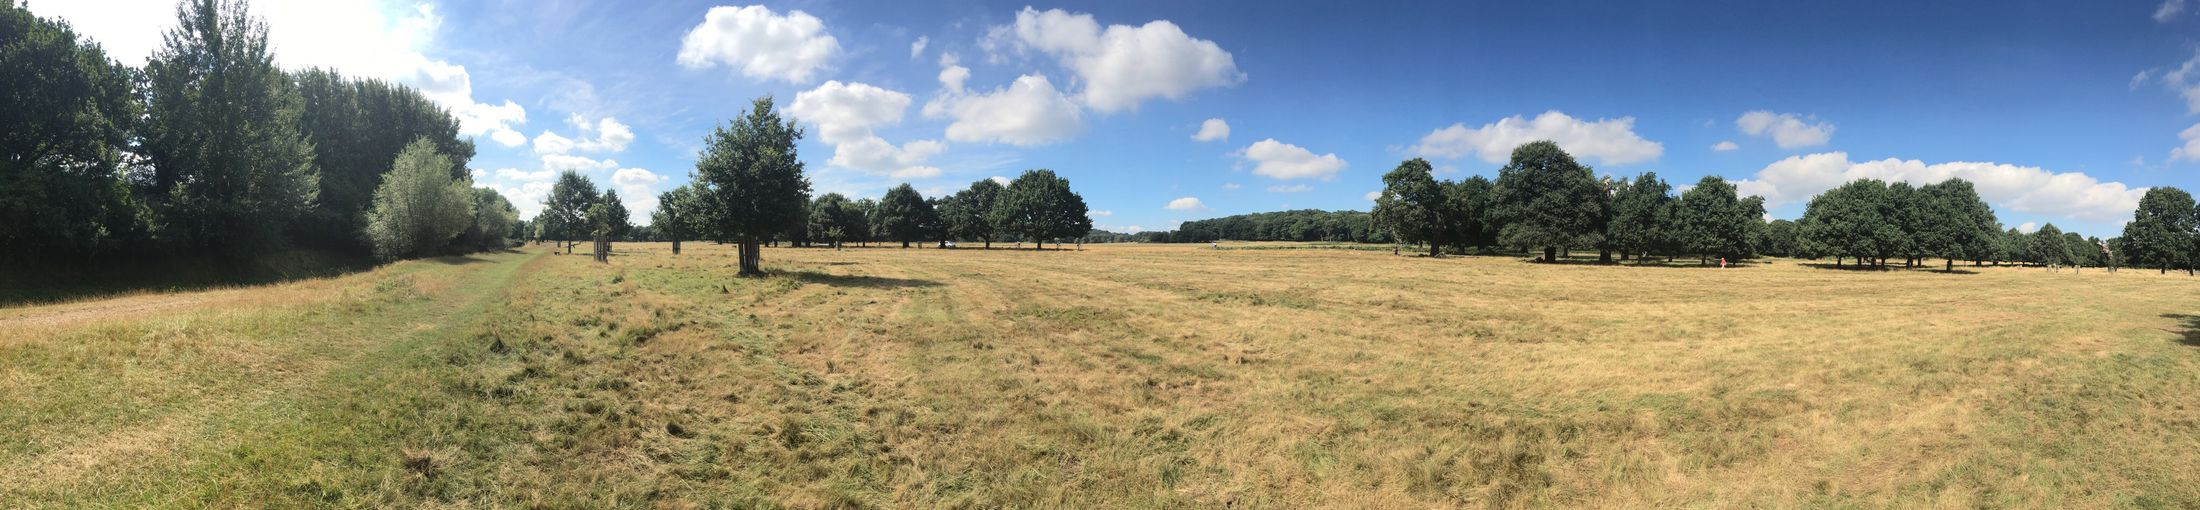 Eyeemphoto Ricchmond Park Parkland Nature Beauty Tranquil Scene Idyllic Sunny Day London England, UK Europe Nobody Non-urban Scene Panoramic Photography Trees Landscape Scenics Tranquility Solitude Beauty In Nature Clouds And Sky Field Outdoors Grassy Day